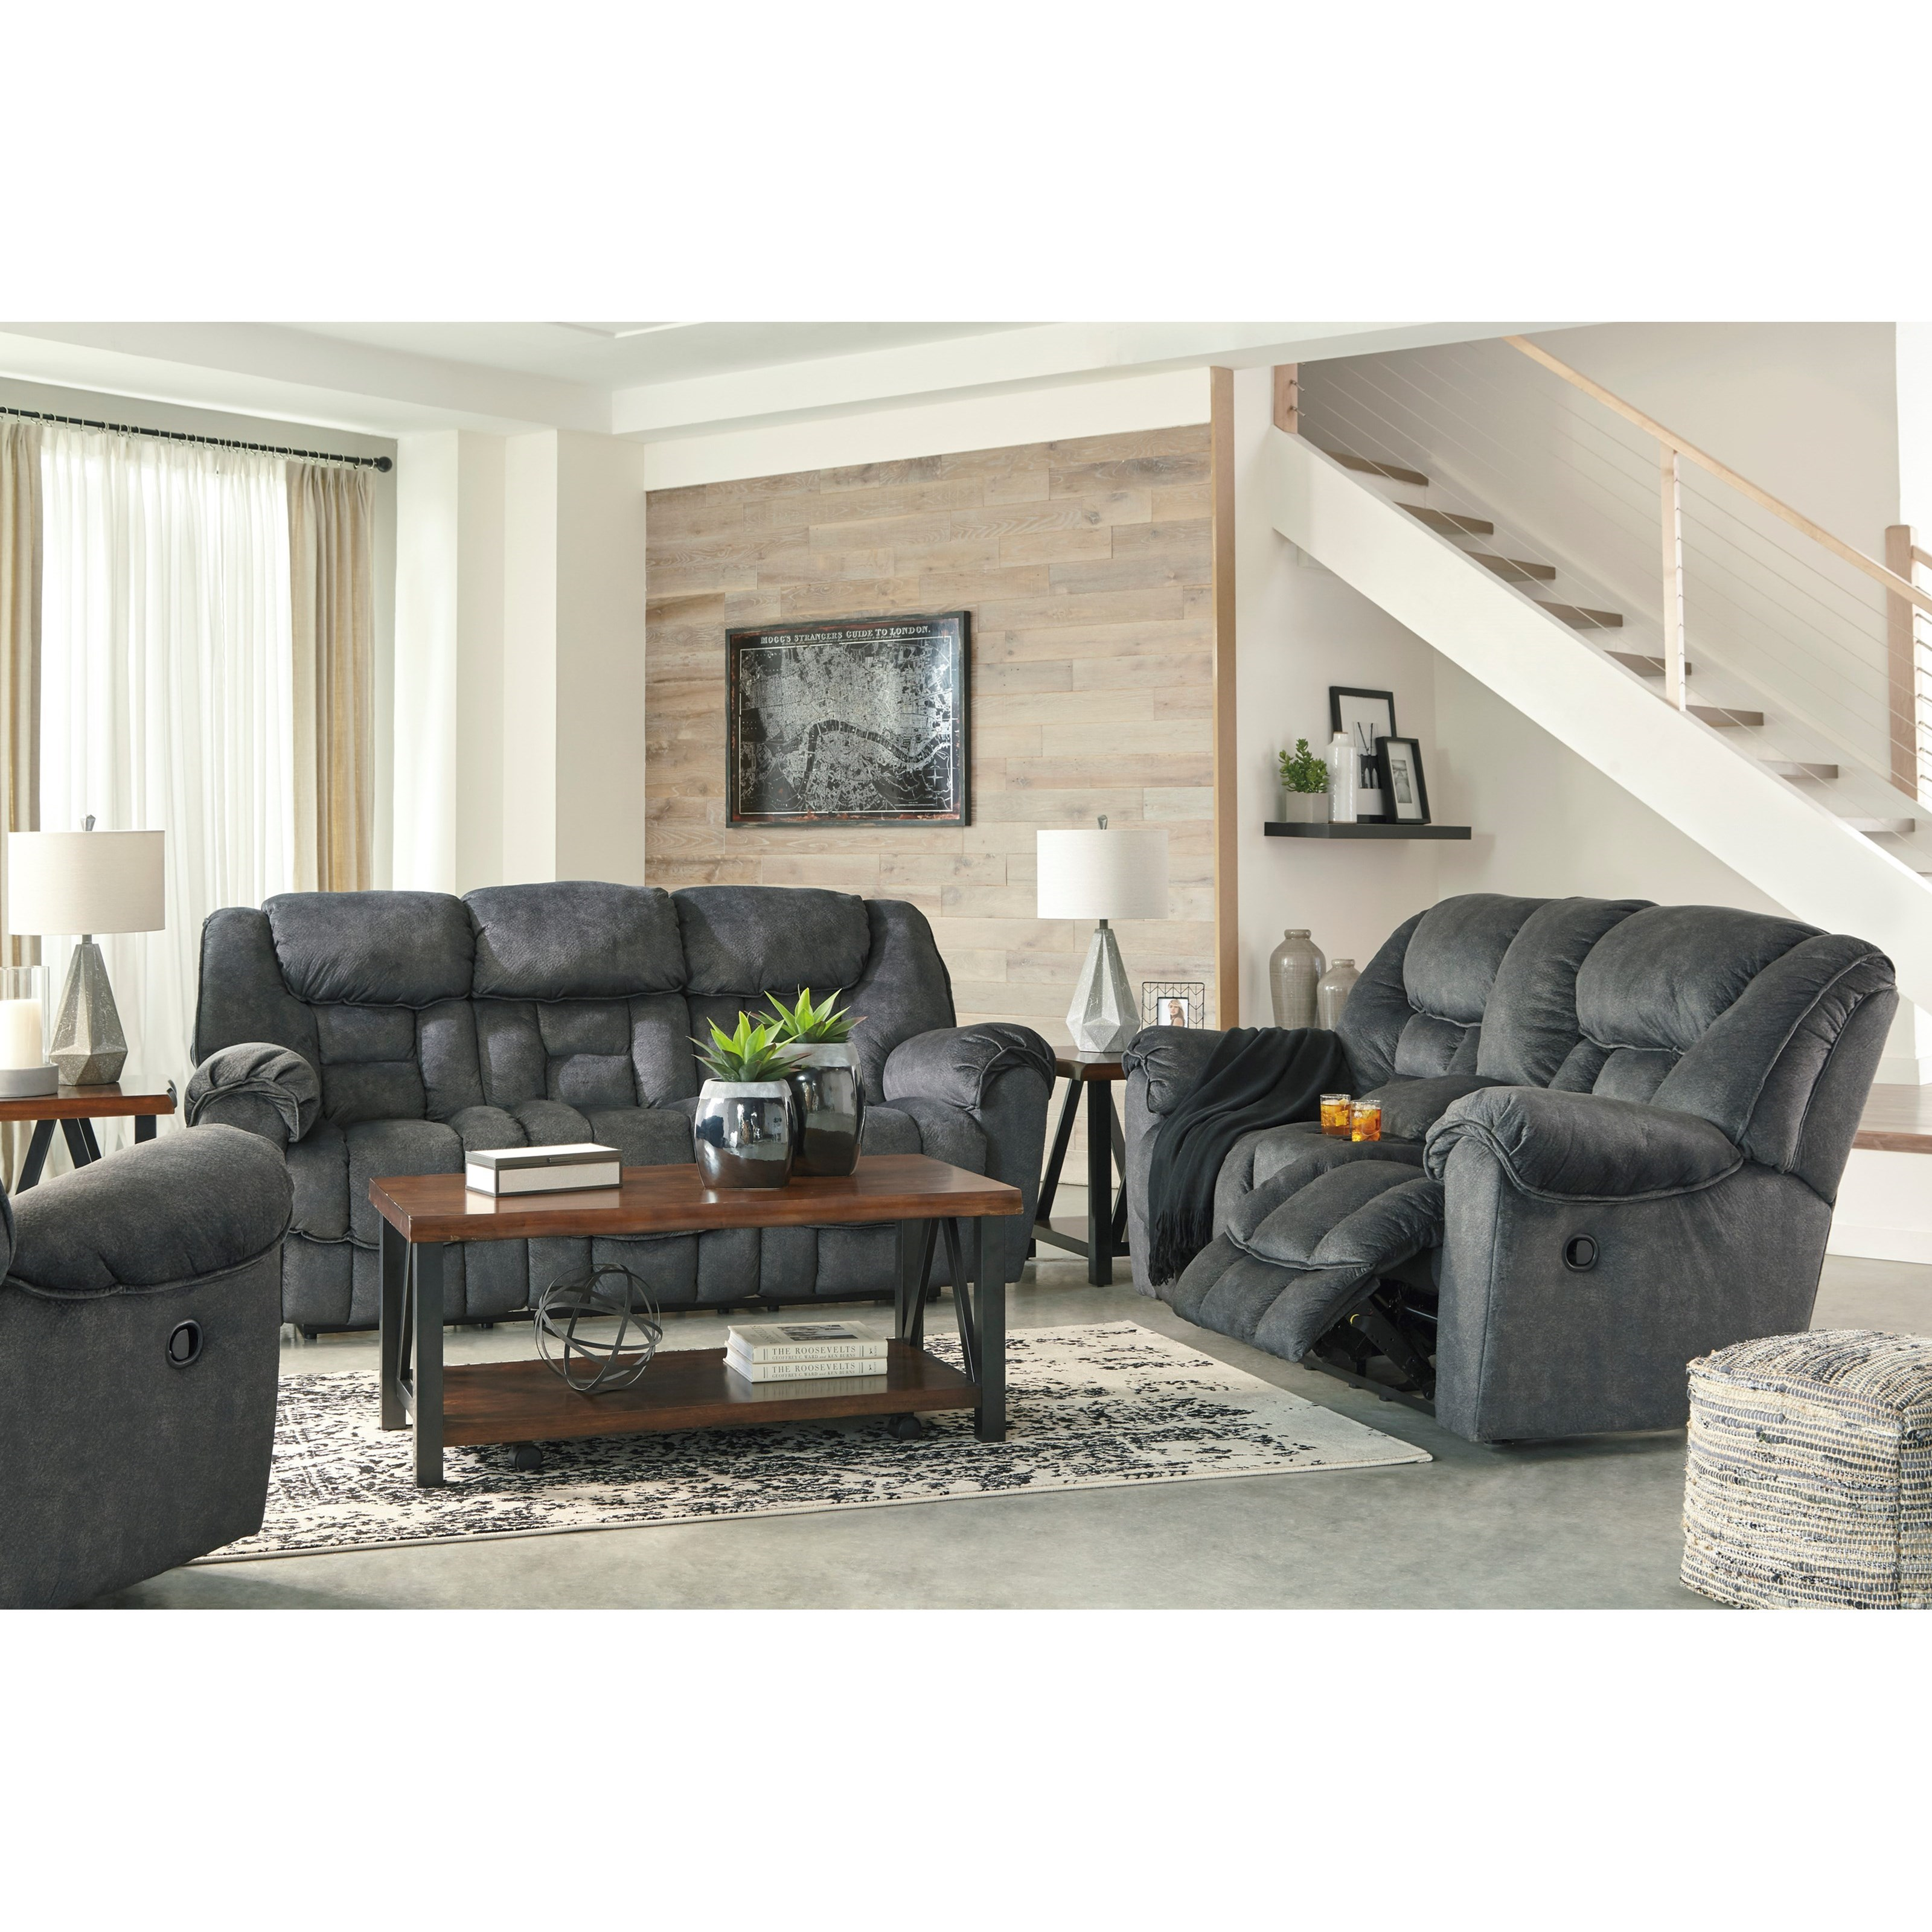 Capehorn Reclining Living Room Group by Signature Design by Ashley at Prime Brothers Furniture